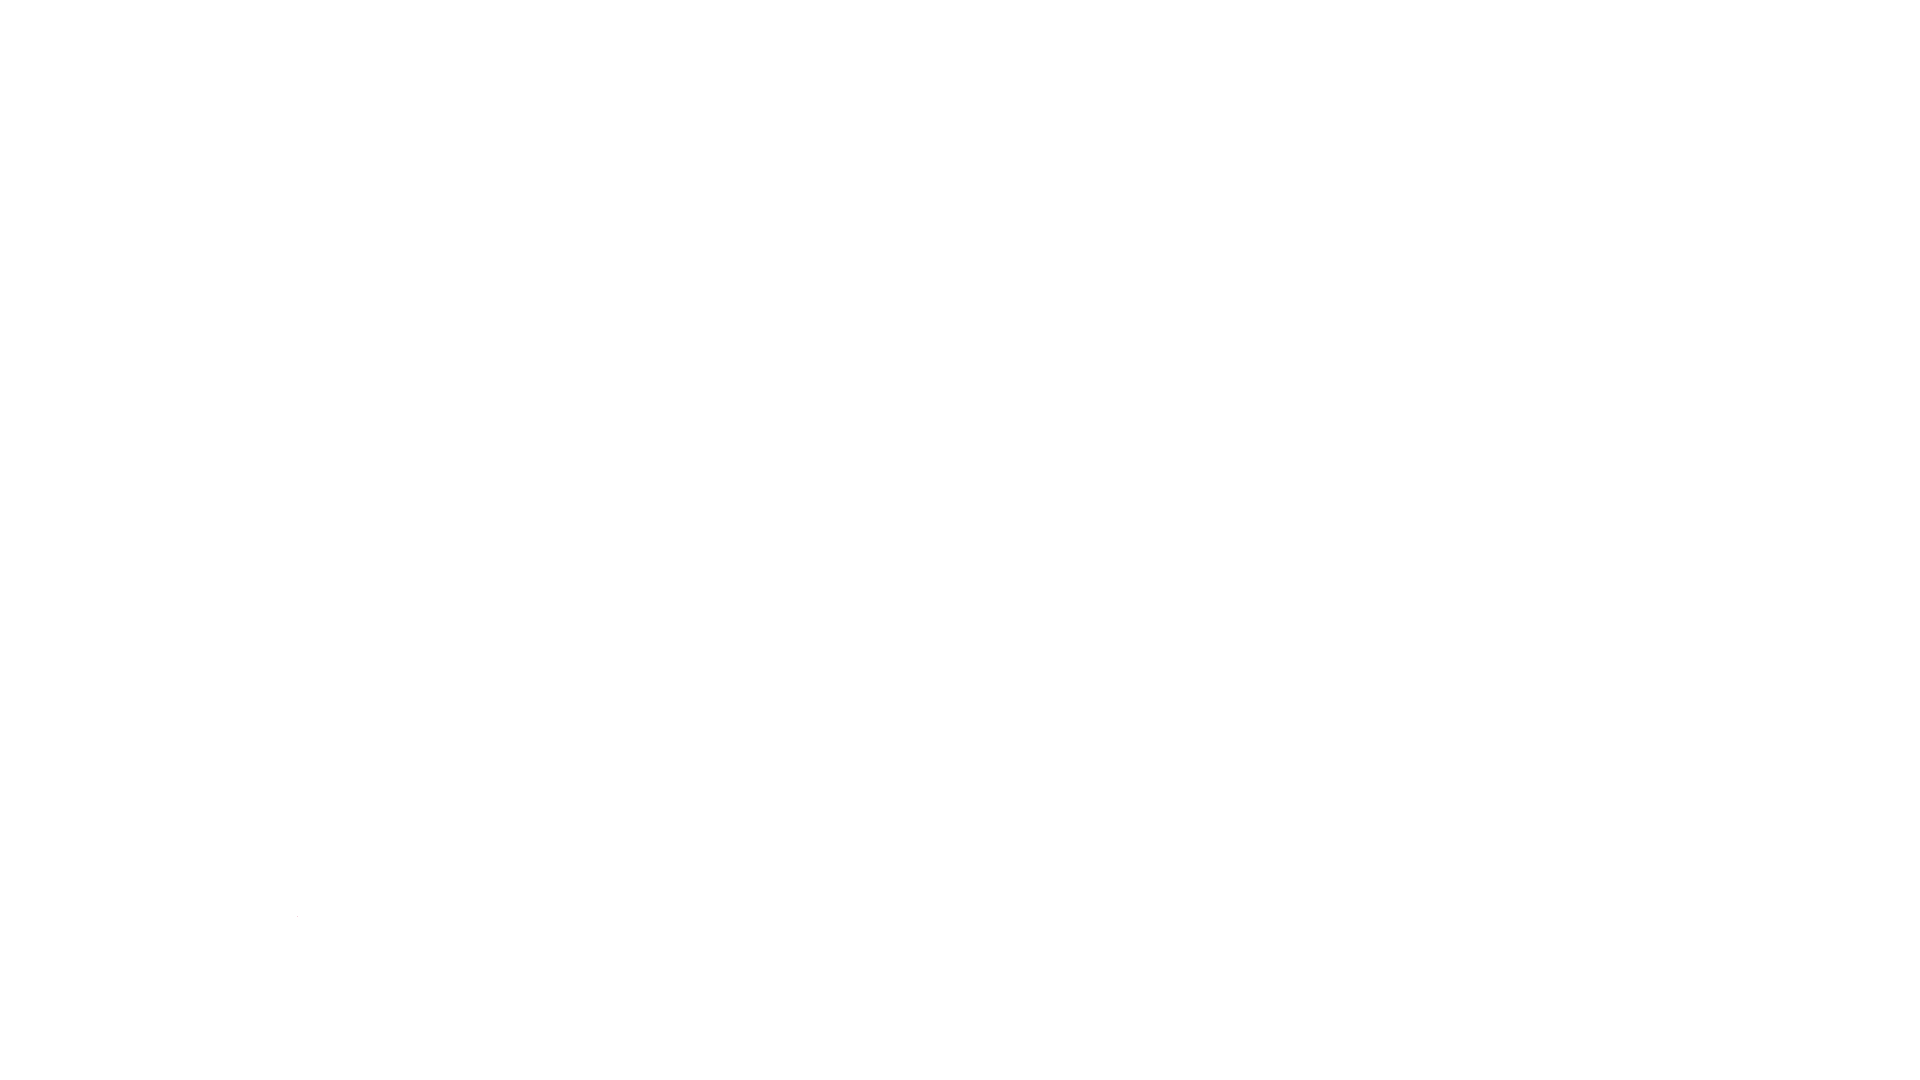 Be courageous.  It takes us all to new places, as individuals, as members and as a company.